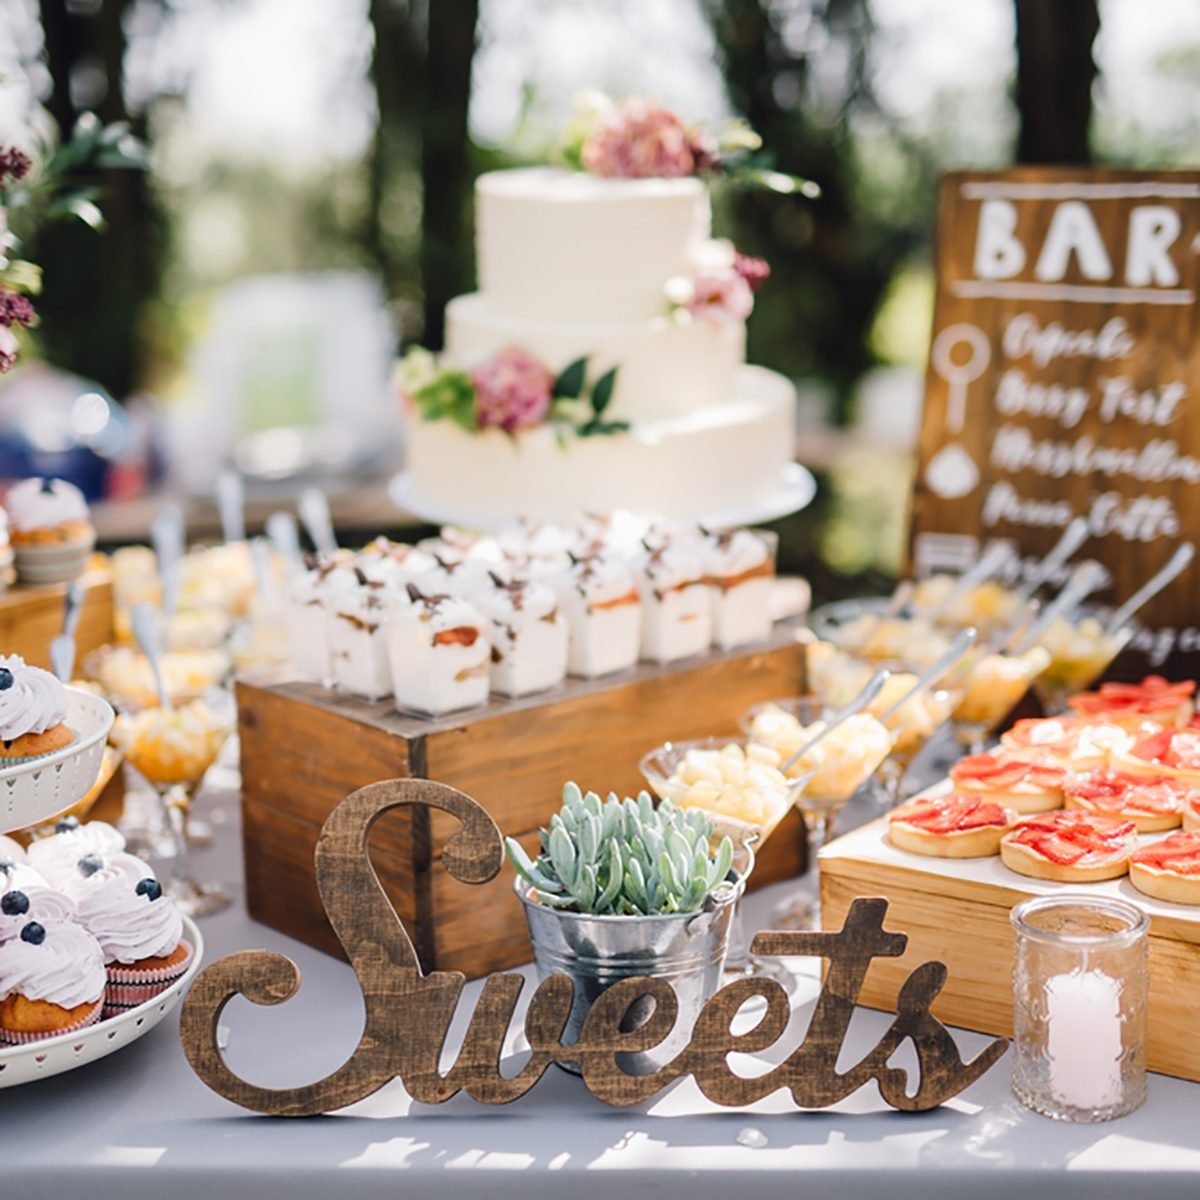 Diy Wedding Dessert Tables: 10 Dessert Table Ideas To Make Your Wedding Reception